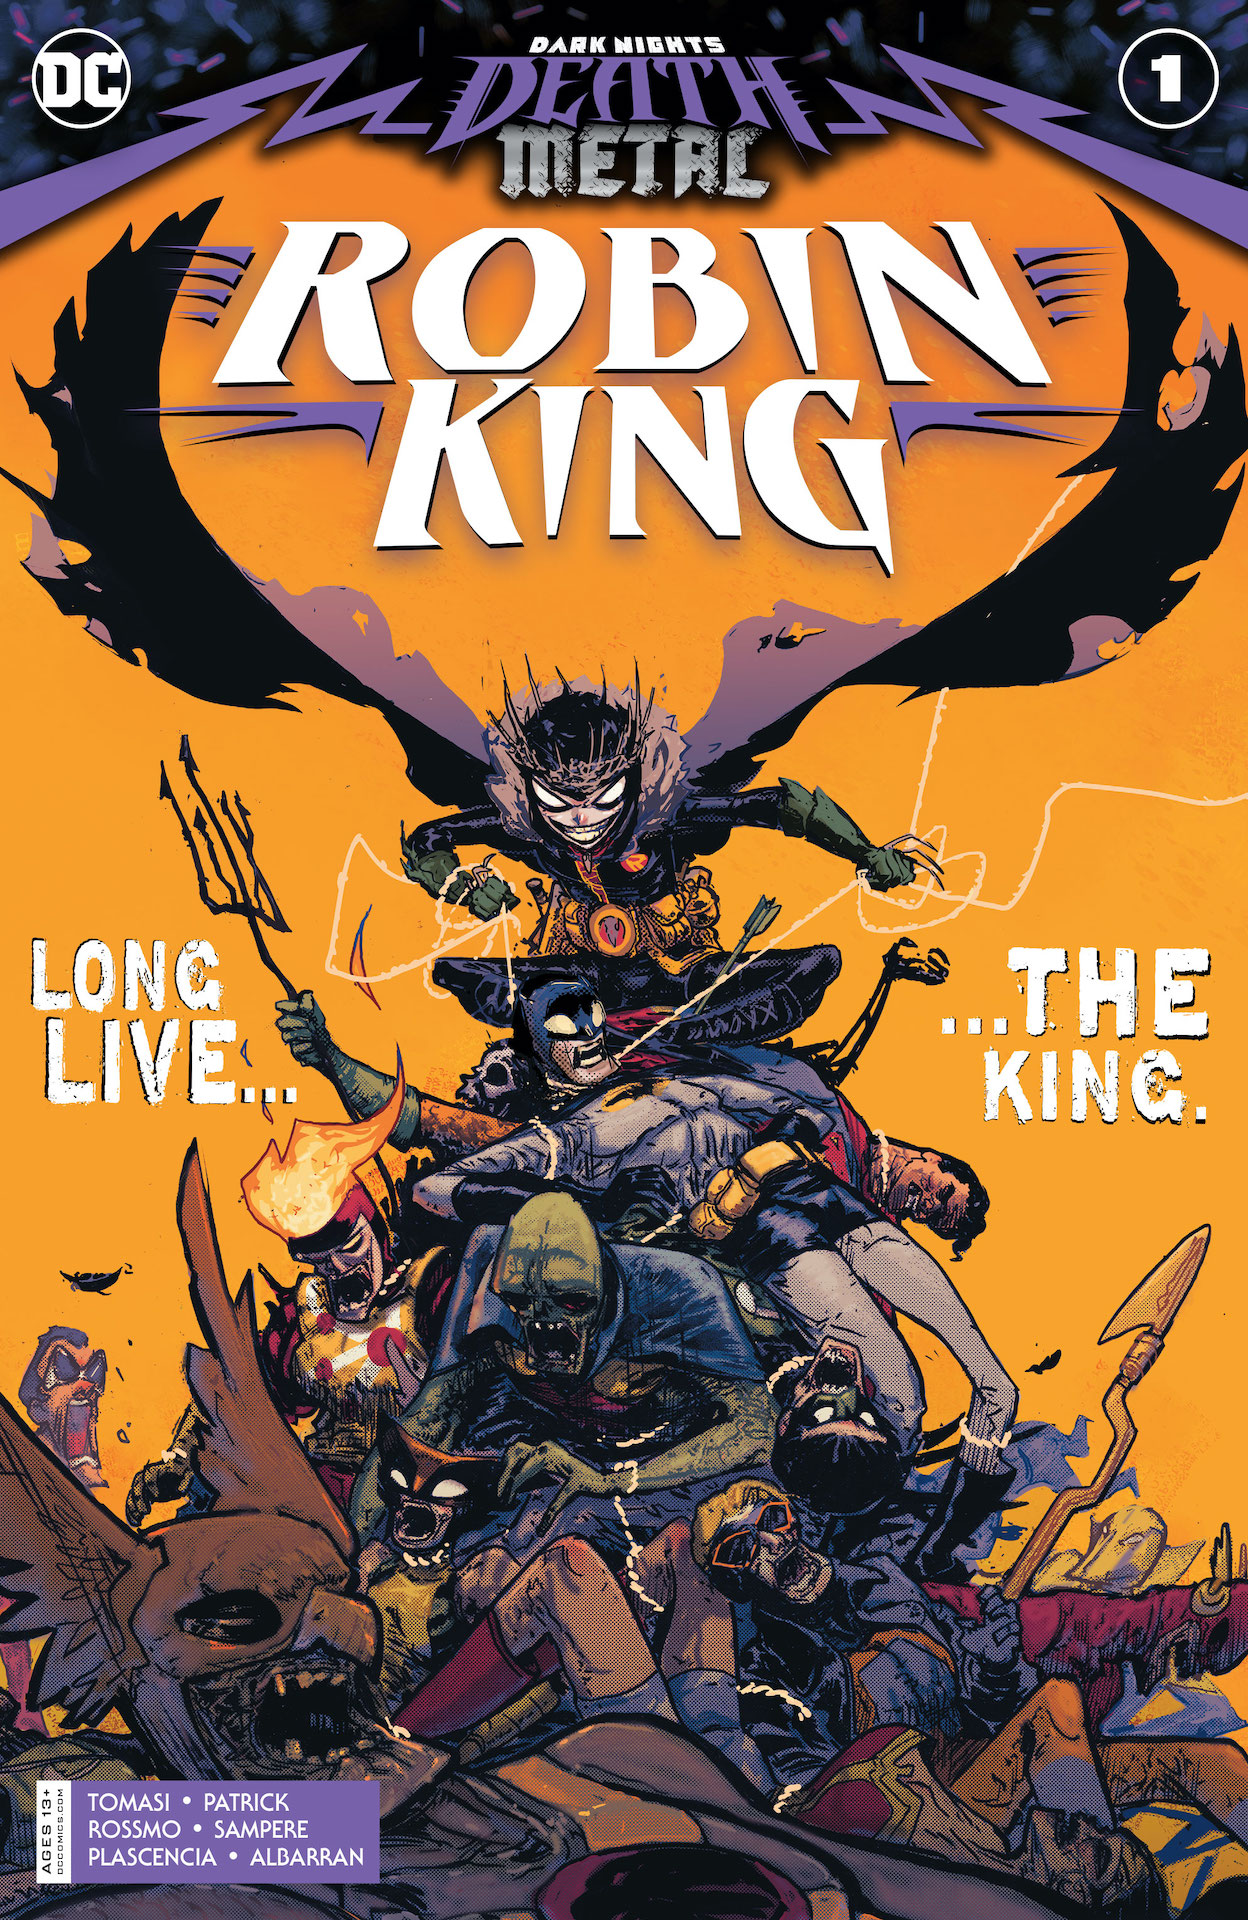 Dark Nights: Death Metal Robin King